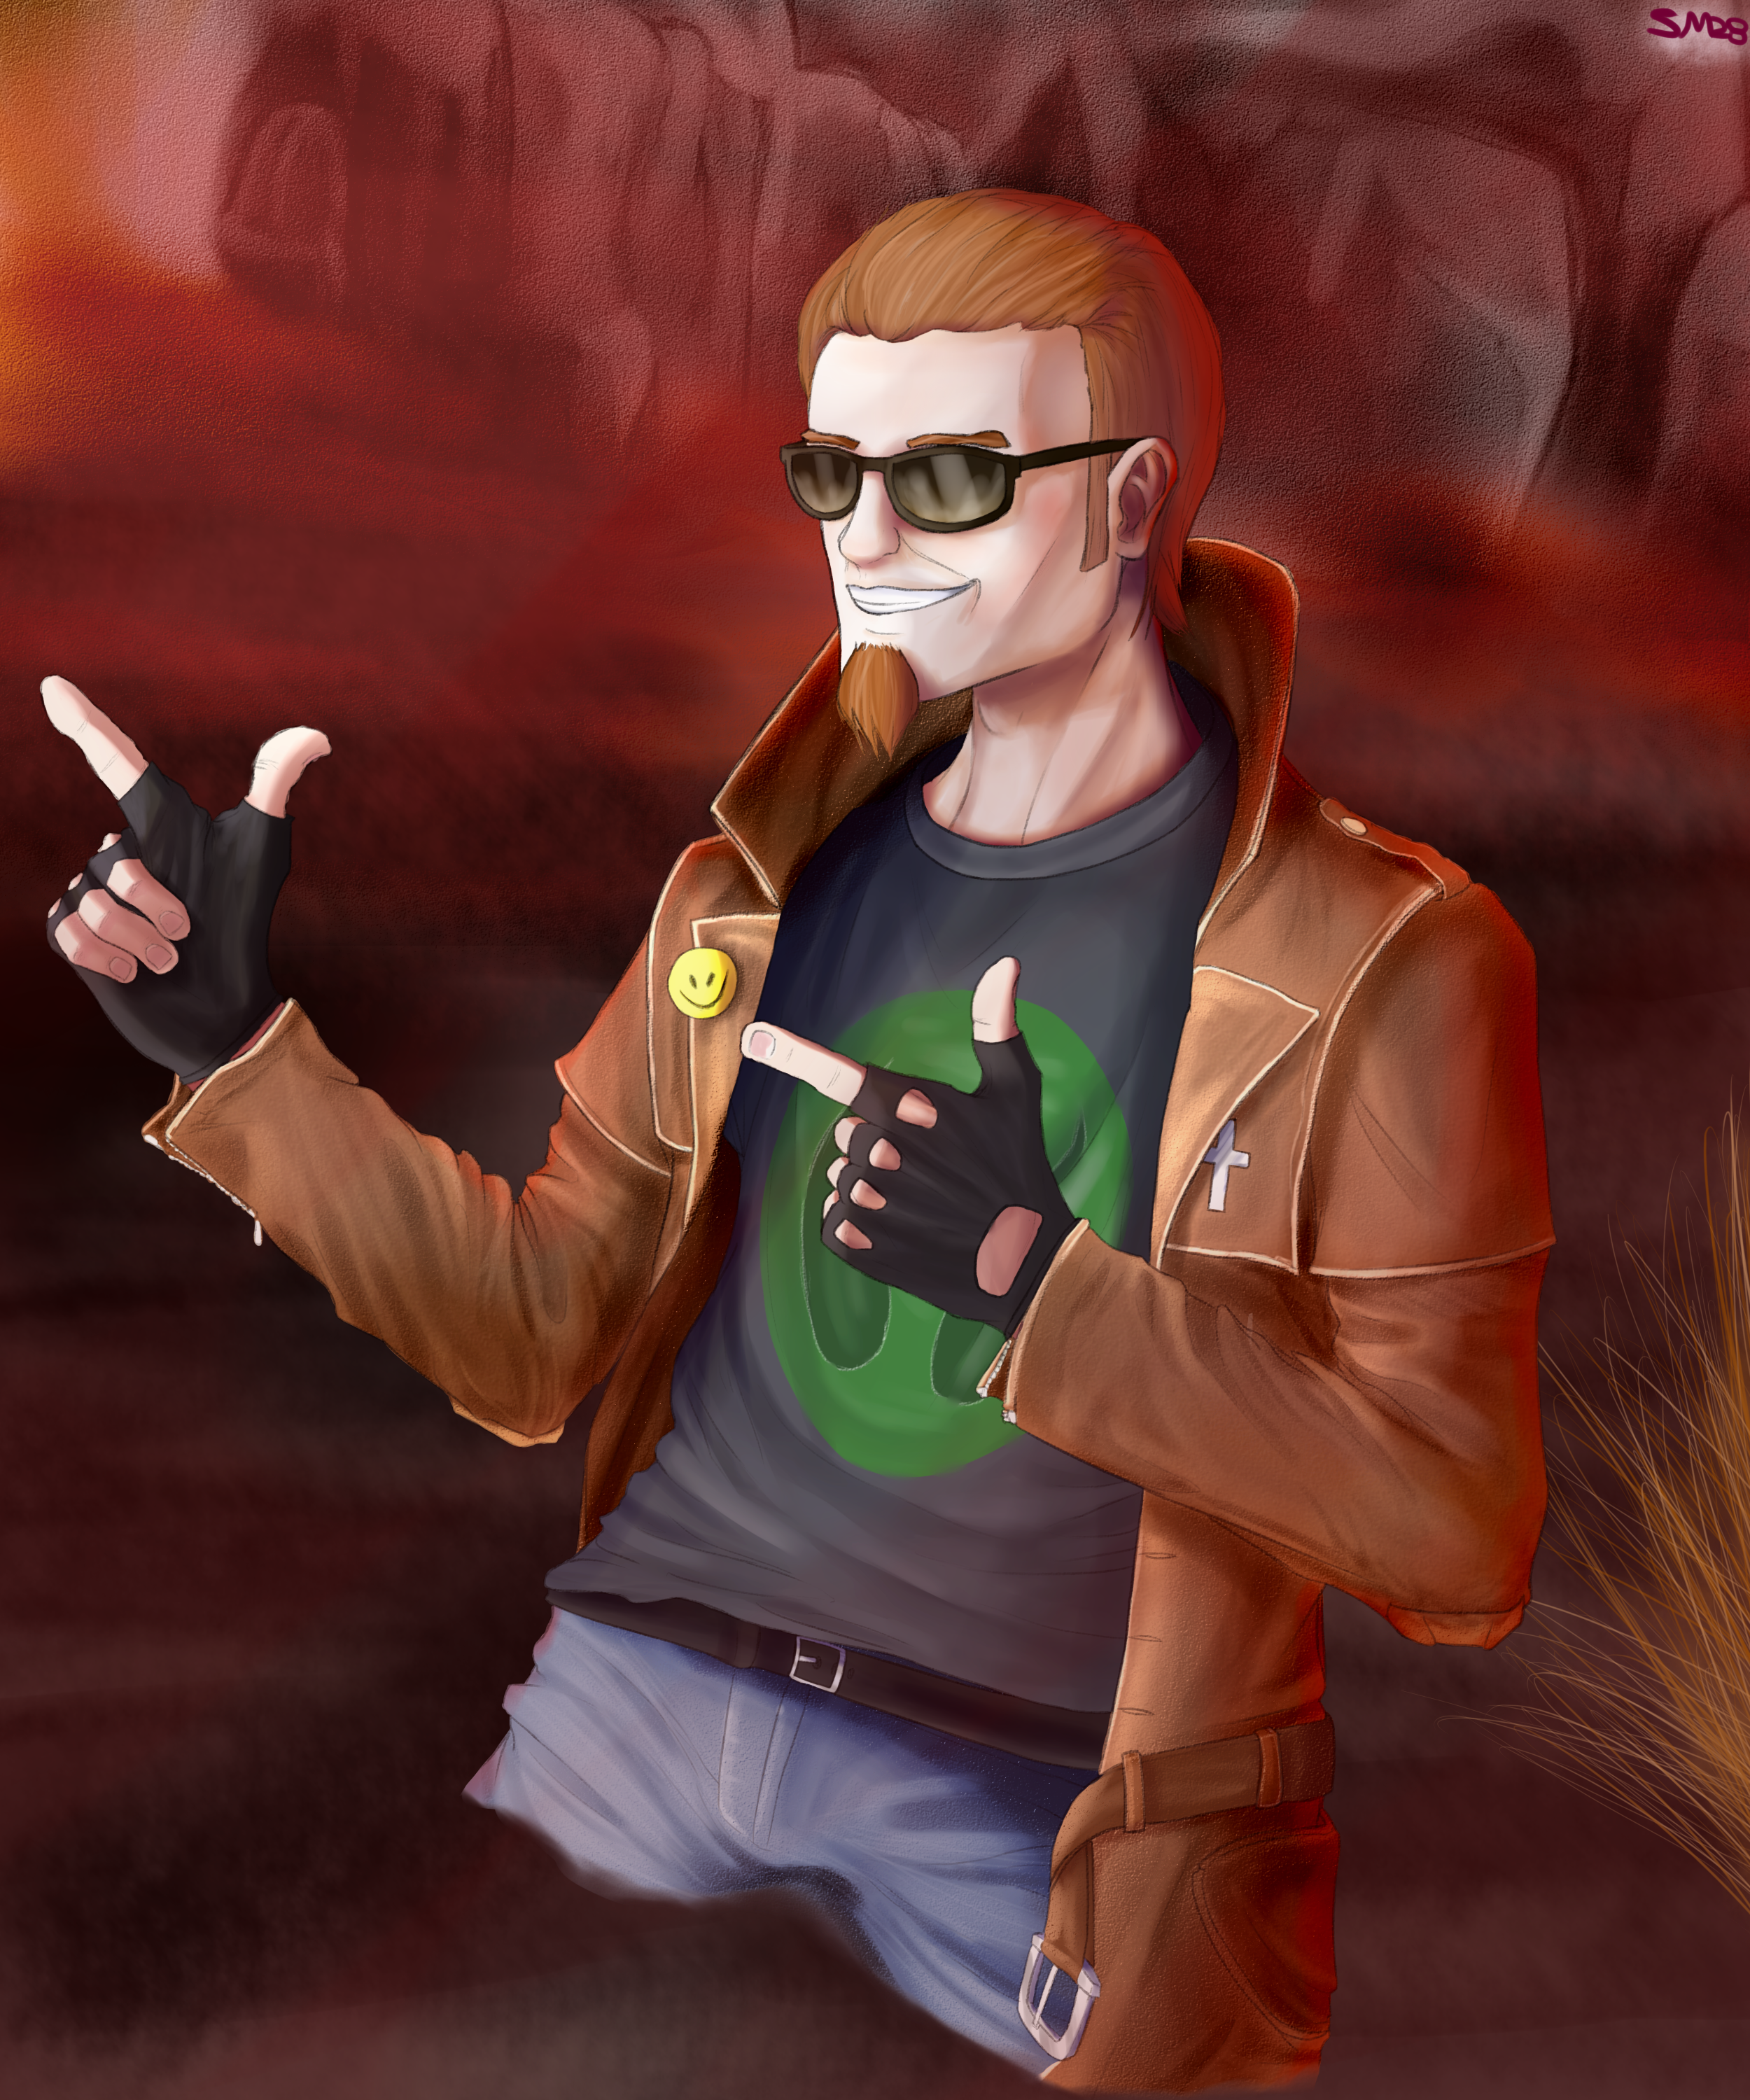 Definitive Postal Dude By Sm28 On Newgrounds